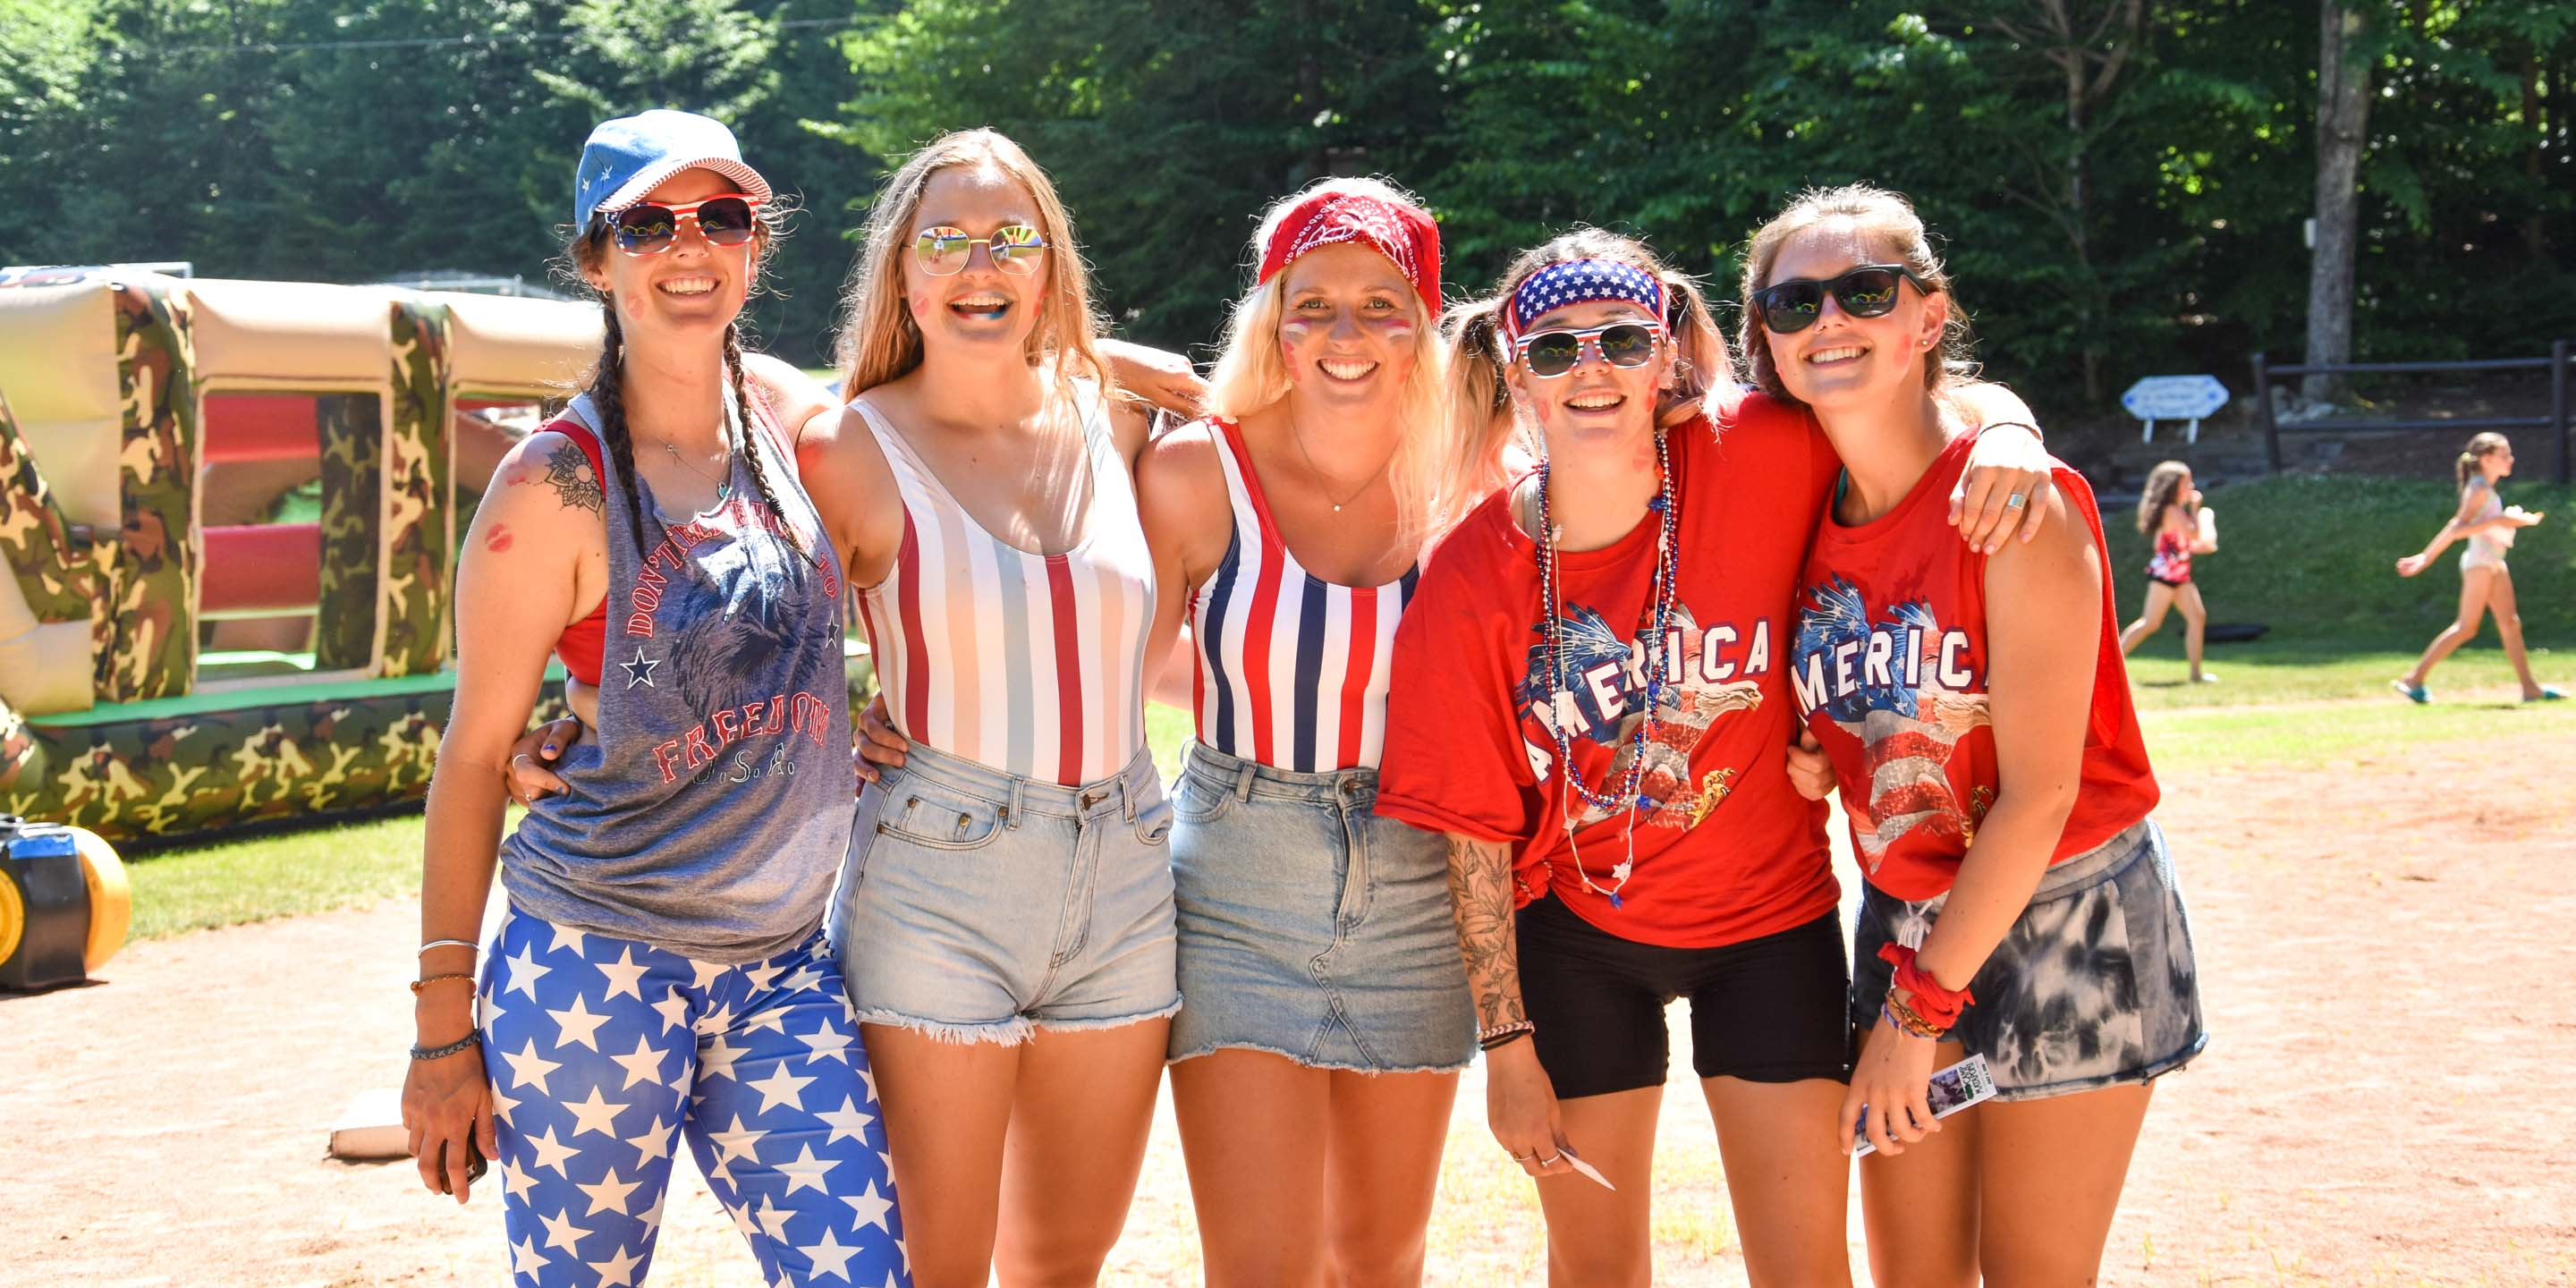 Counselors dressed up in red, white and blue for 4th of July